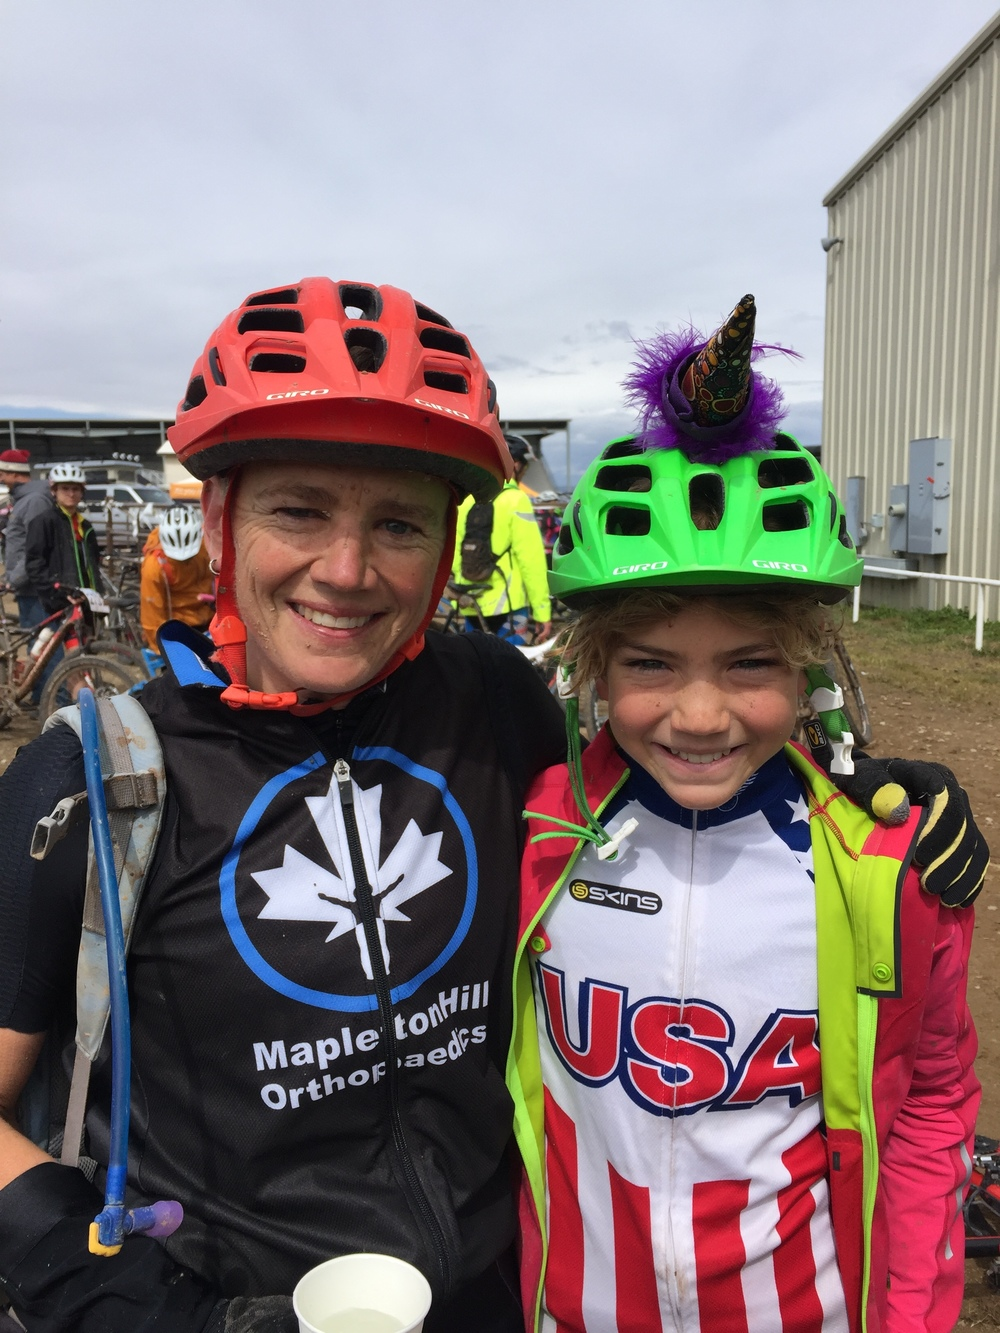 Sometimes you can fill your own bucket and be a mom at the same time. We had a great time at the bike race this weekend.